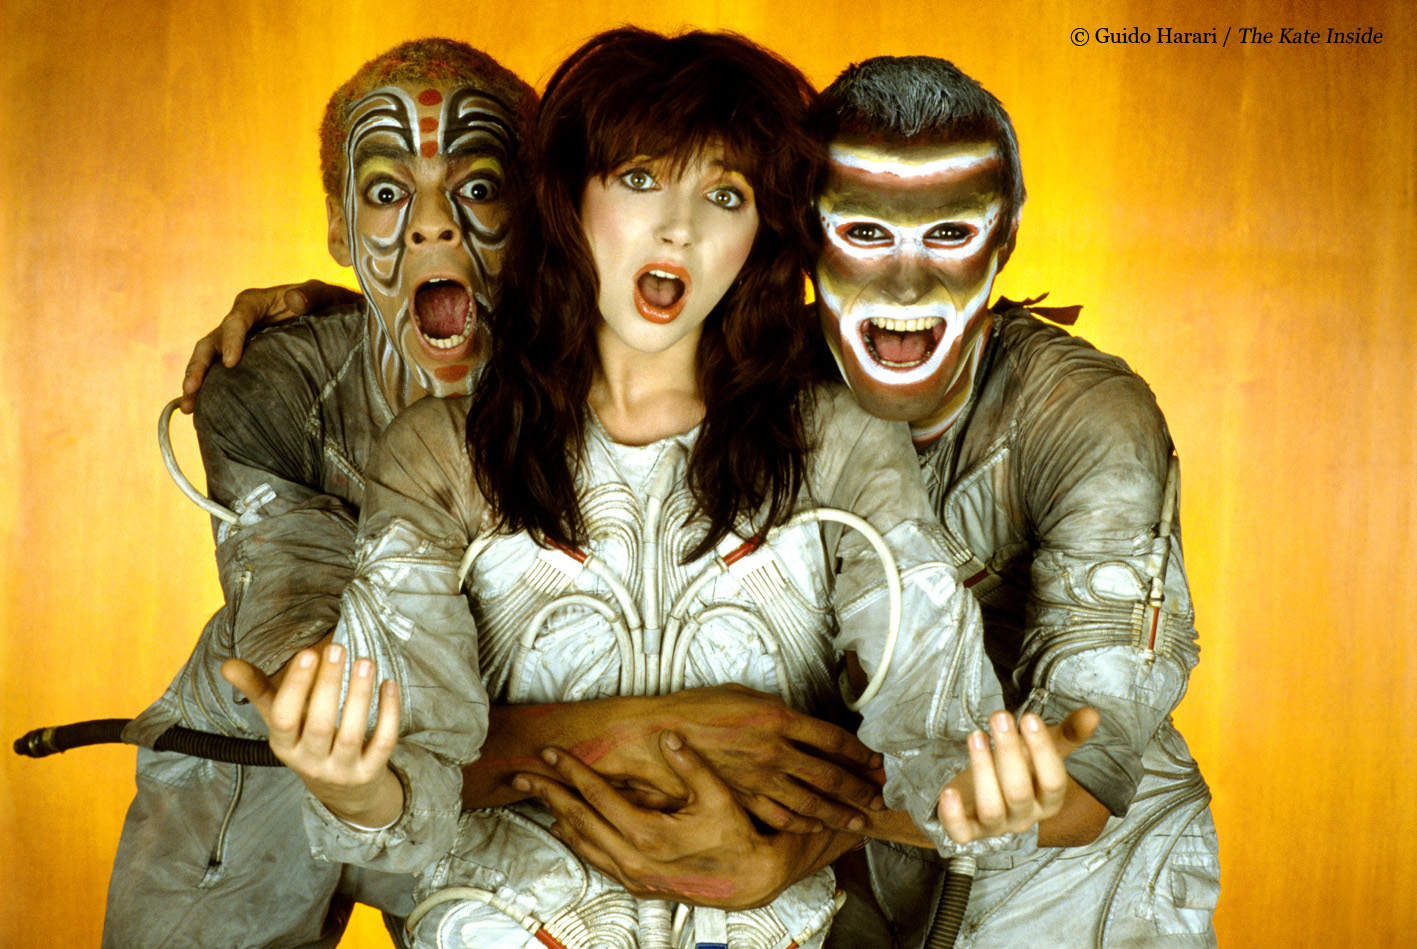 NEWS: New images from Kate Bush book 'The Kate Inside' revealed